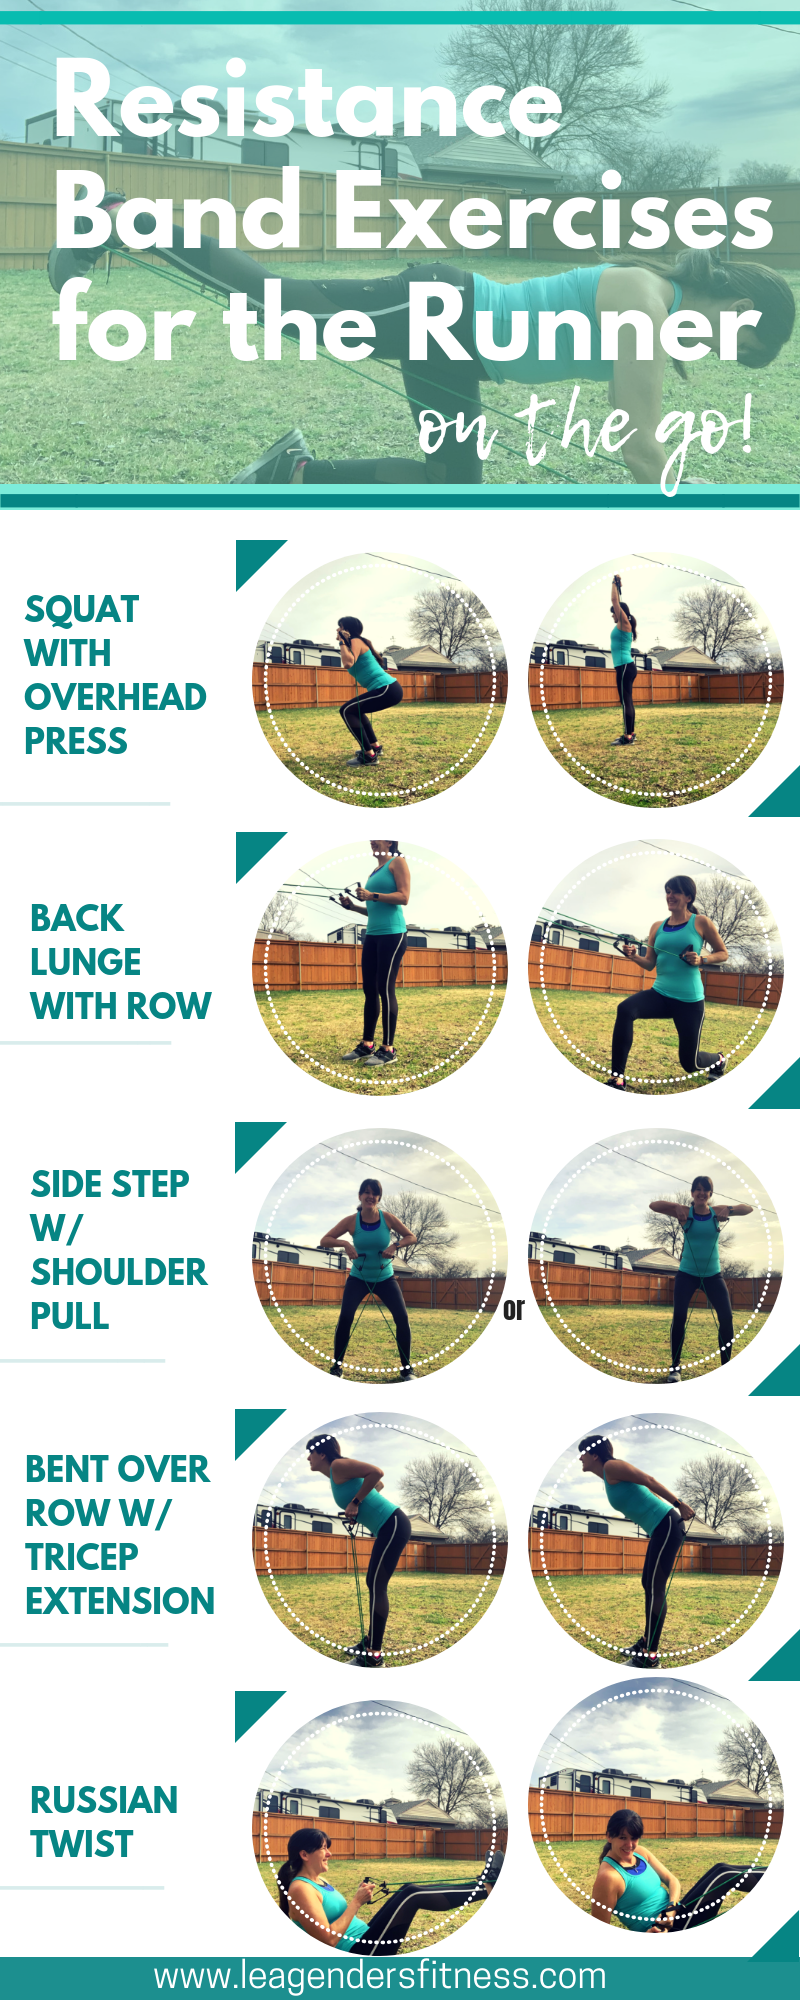 resistance band exercises for runners on the go. Save to your favorite Pinterest board for later.